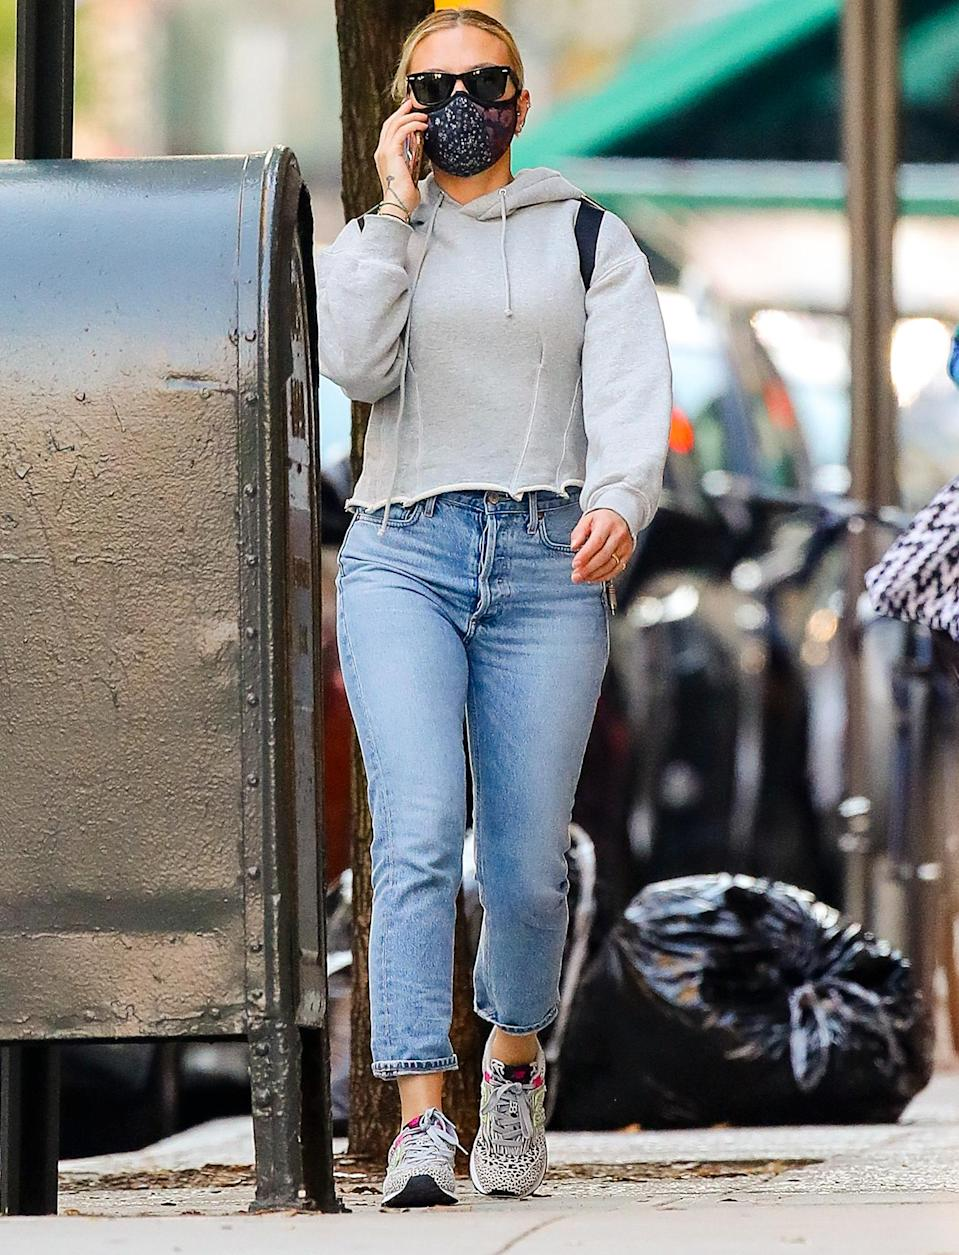 <p>Scarlett Johansson is seen out for a walk on Wednesday in N.Y.C. with her new wedding ring on.</p>